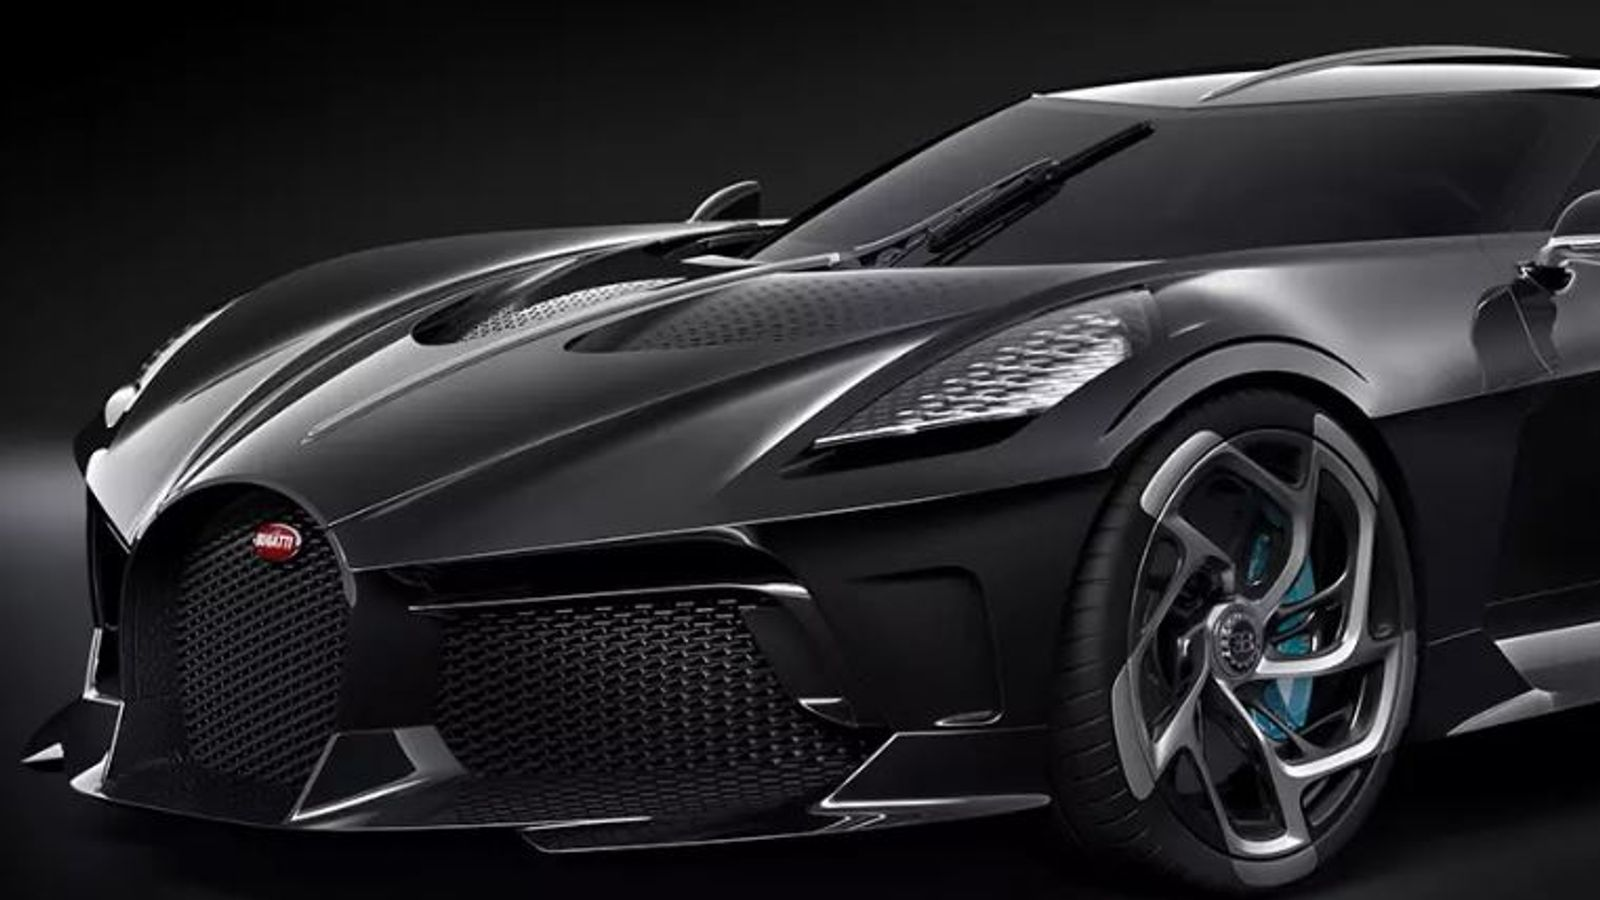 Bugatti La Voiture Noire: Bugatti La Voiture Noire Bought For Nearly £14.4m